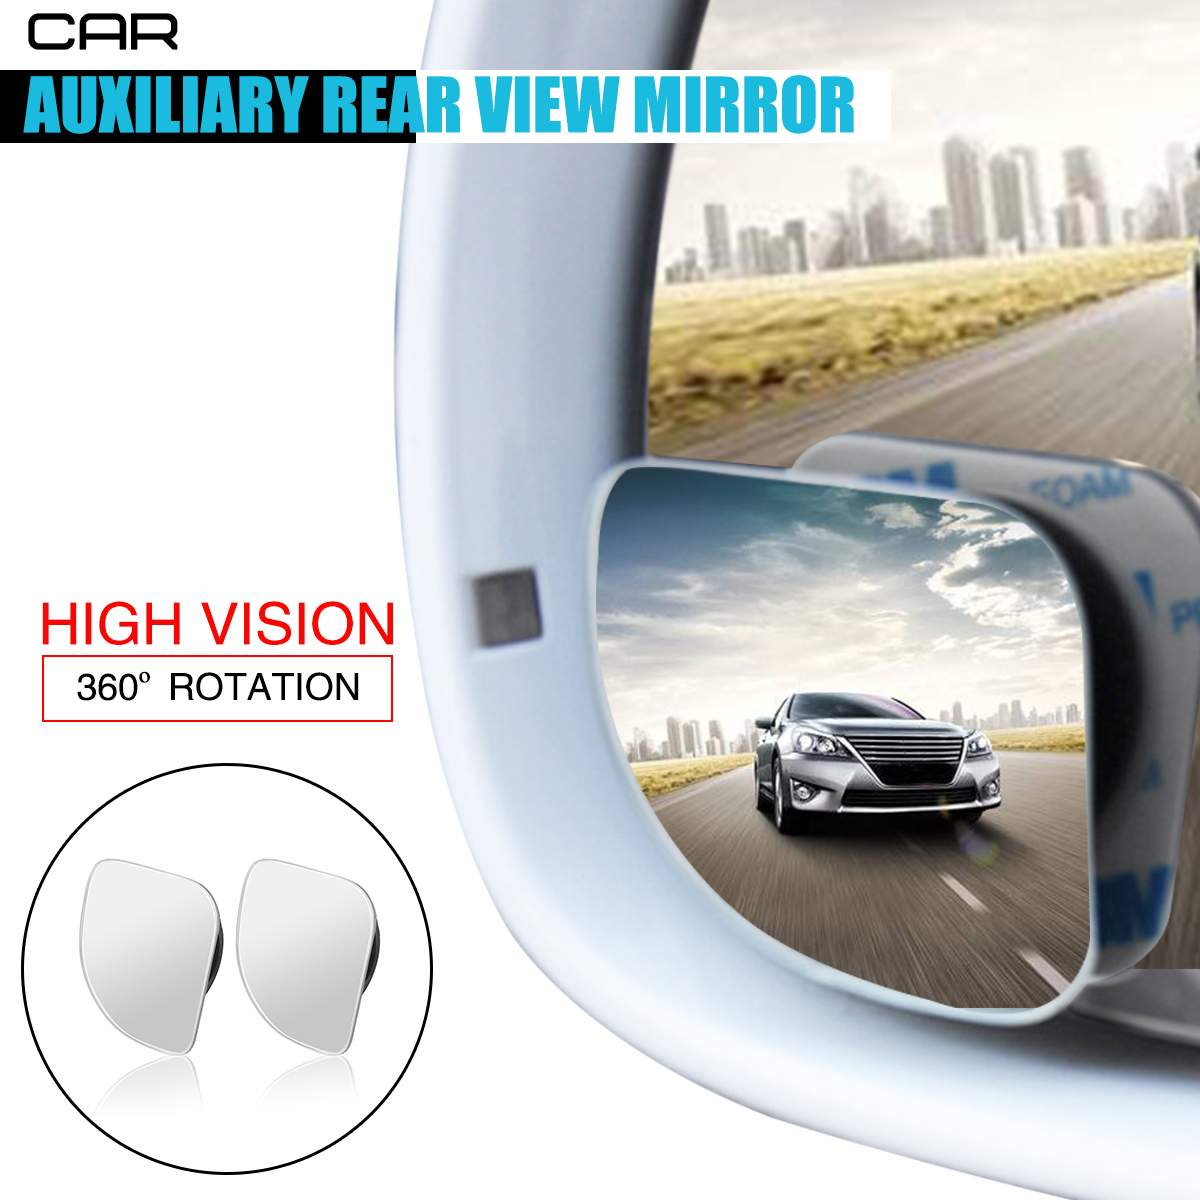 Safety Shatterproof Acrylic 360 Degree Pivots Adjust View Baby Car Mirror for Back Seat Double Shoulder Strap Fixed Not Loose Big Vision to Clear Observe The Babys Every Move VTIN Drivers Baby Car Mirror Easy Install